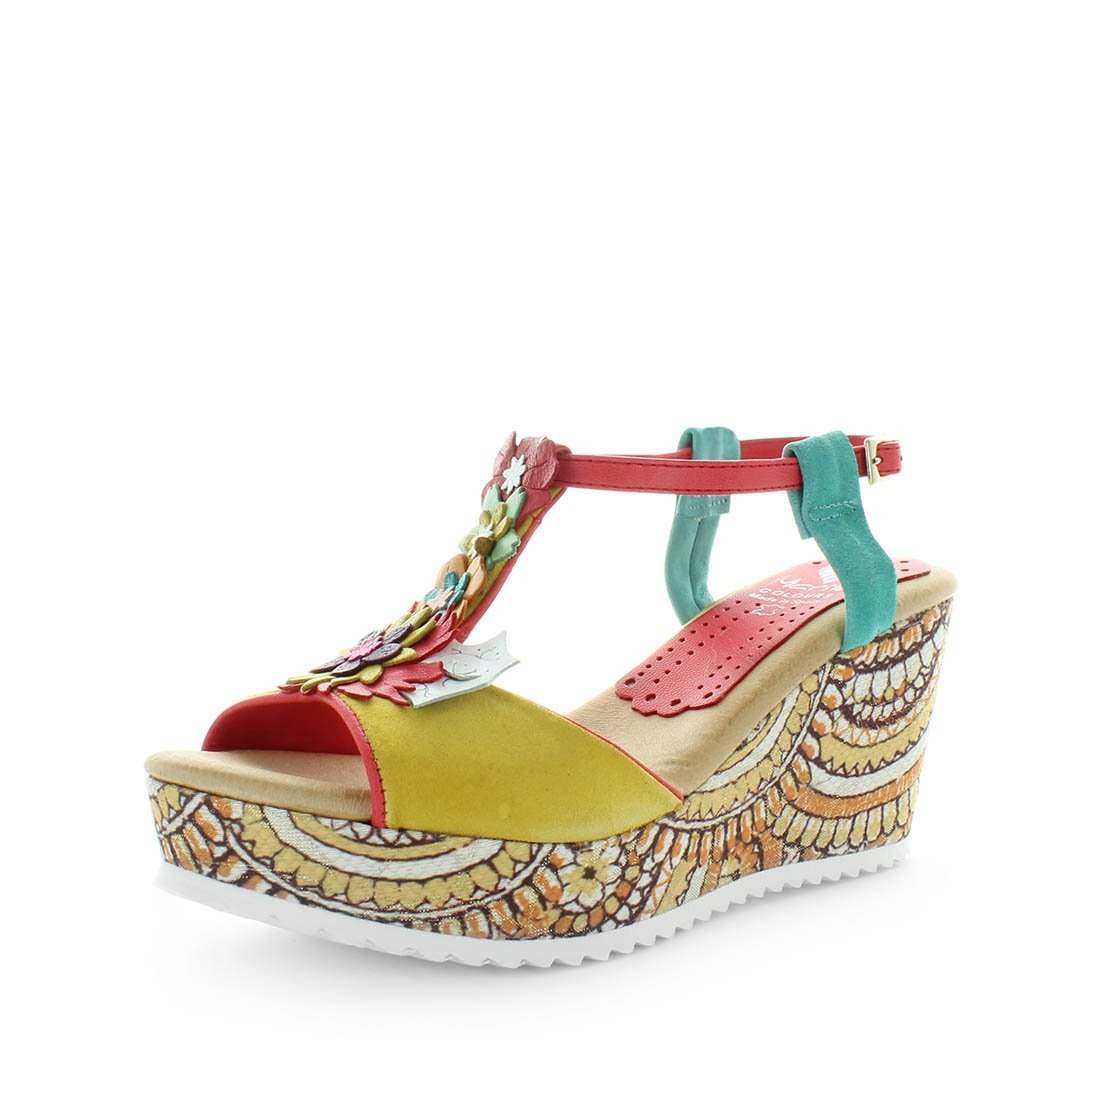 womens colourful wedges, womens wedges, womens spanish shoes, ladies wedges, leather wedge sandal, sandals from spain, made in spain, marila shoes, maura